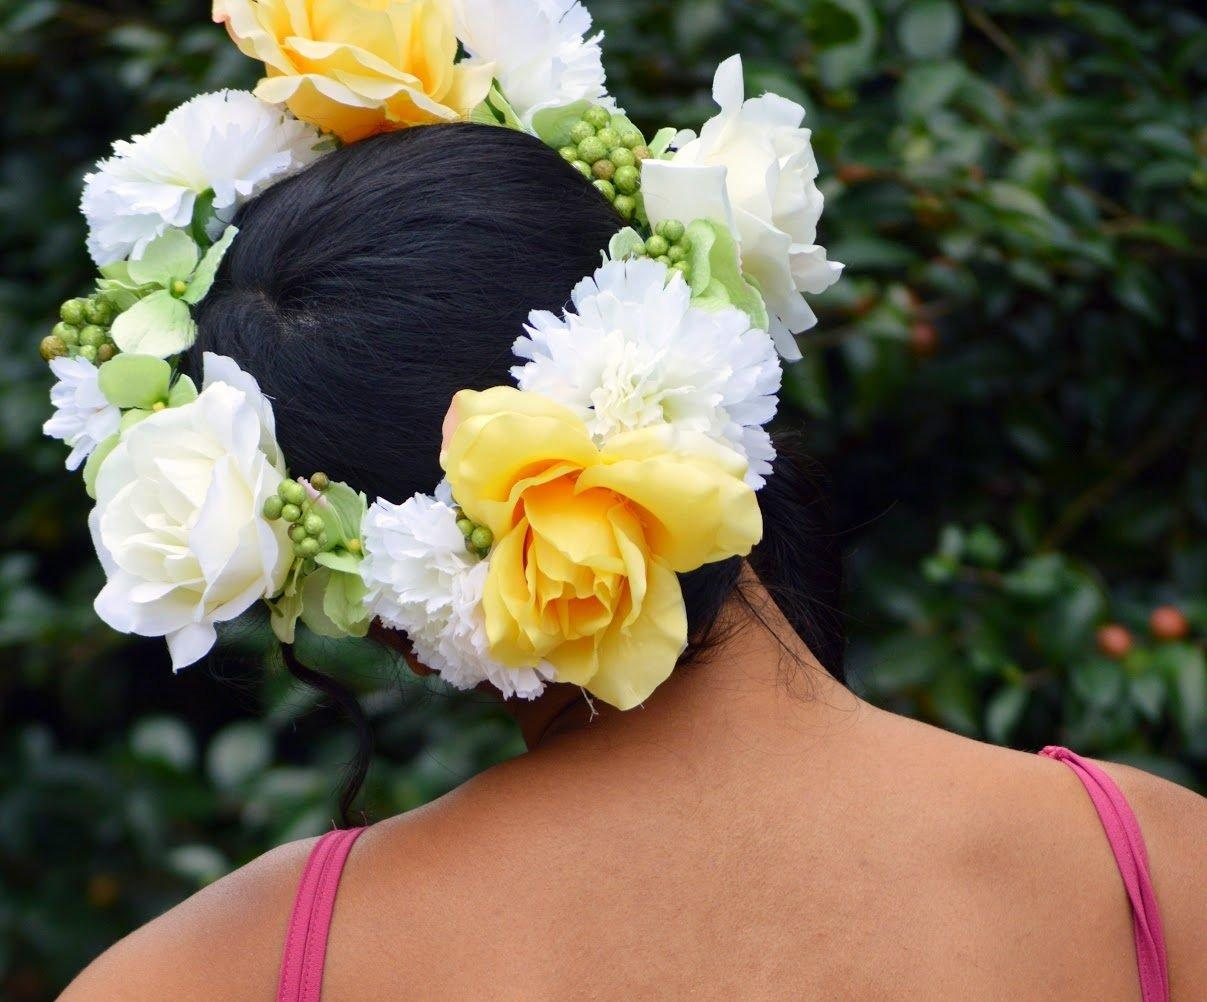 Ready to welcome spring with fun 18 diy floral crowns oversized flower crown izmirmasajfo Images